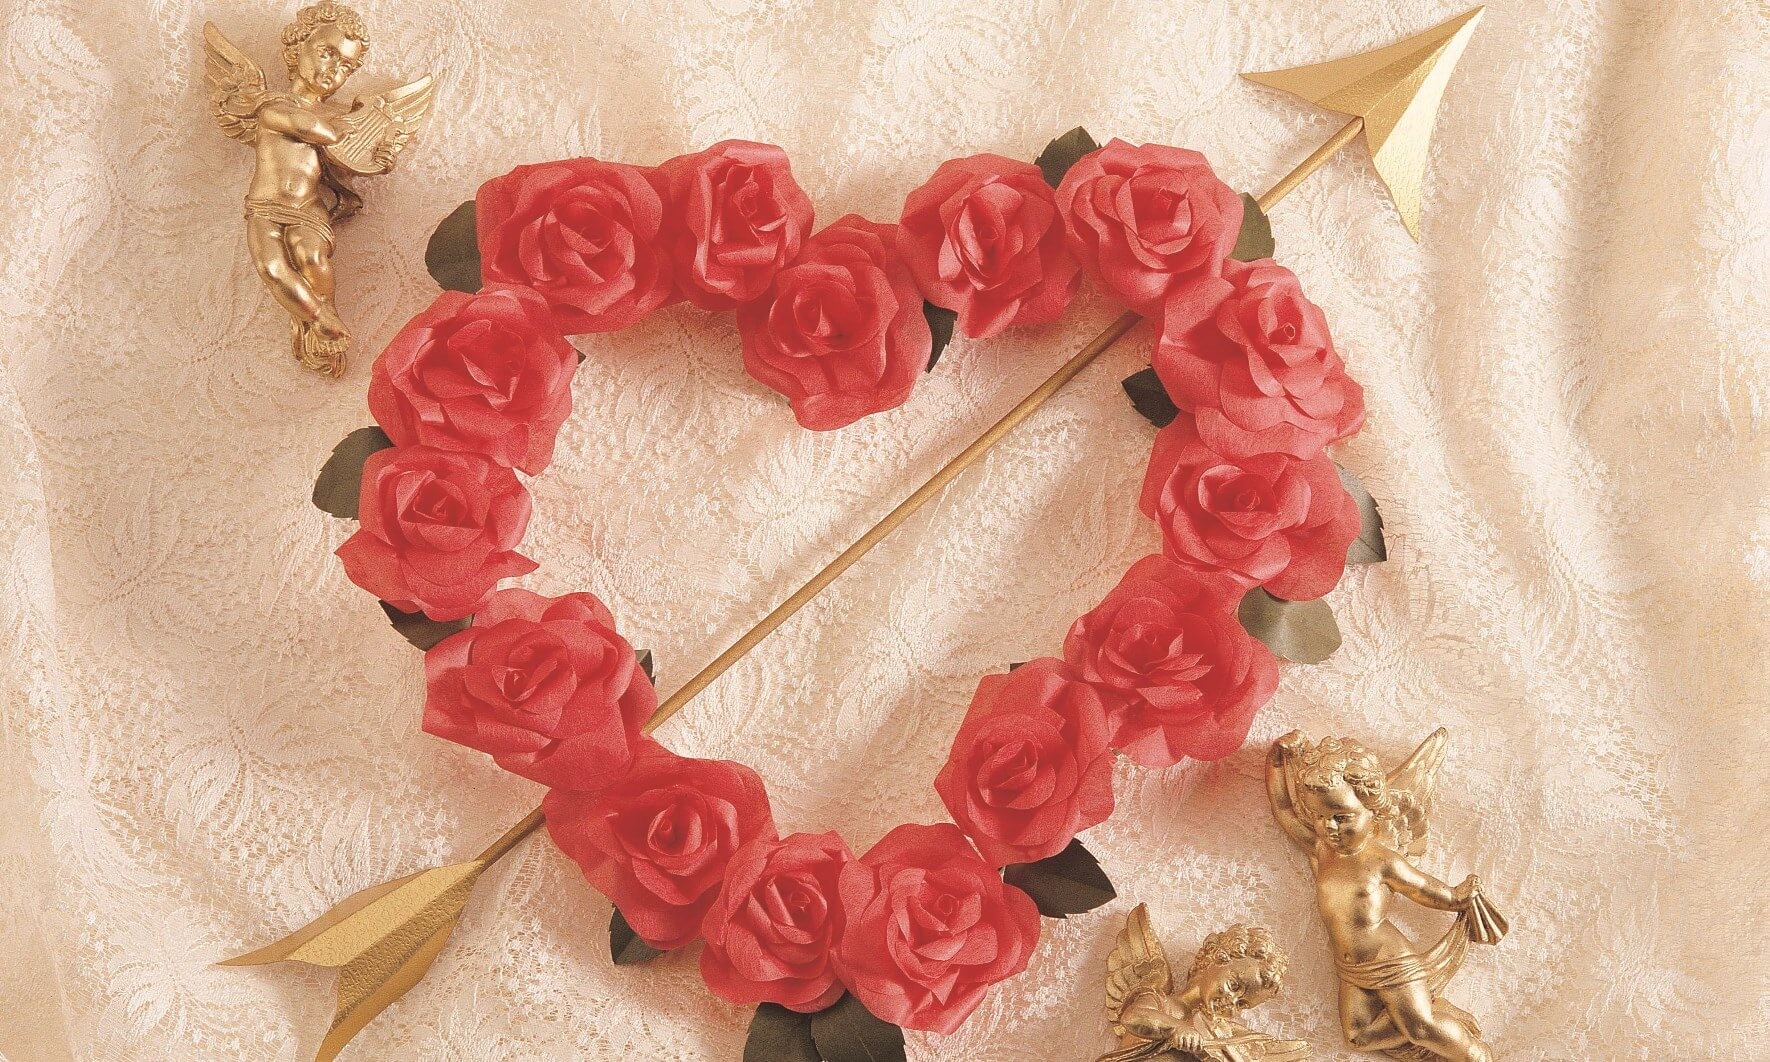 Roses in the shape of a heart pierced by Cupid's arrow